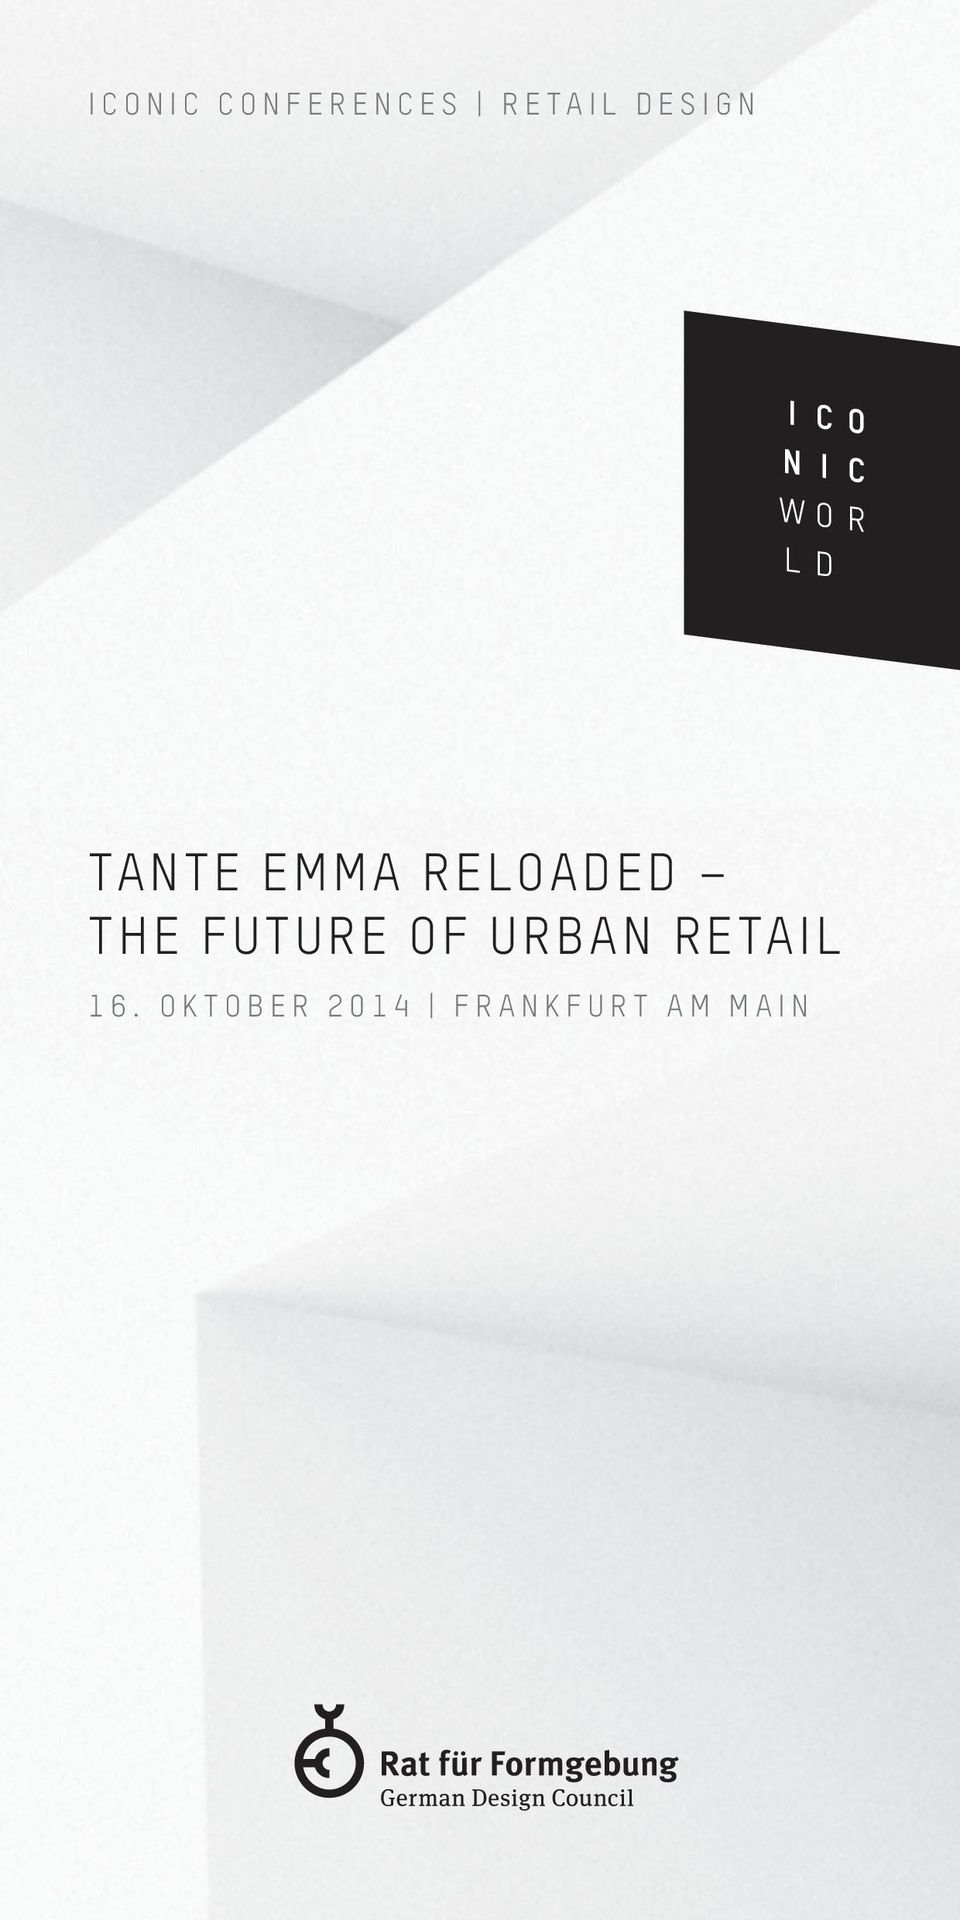 THE FUTURE OF URBAN RETAIL